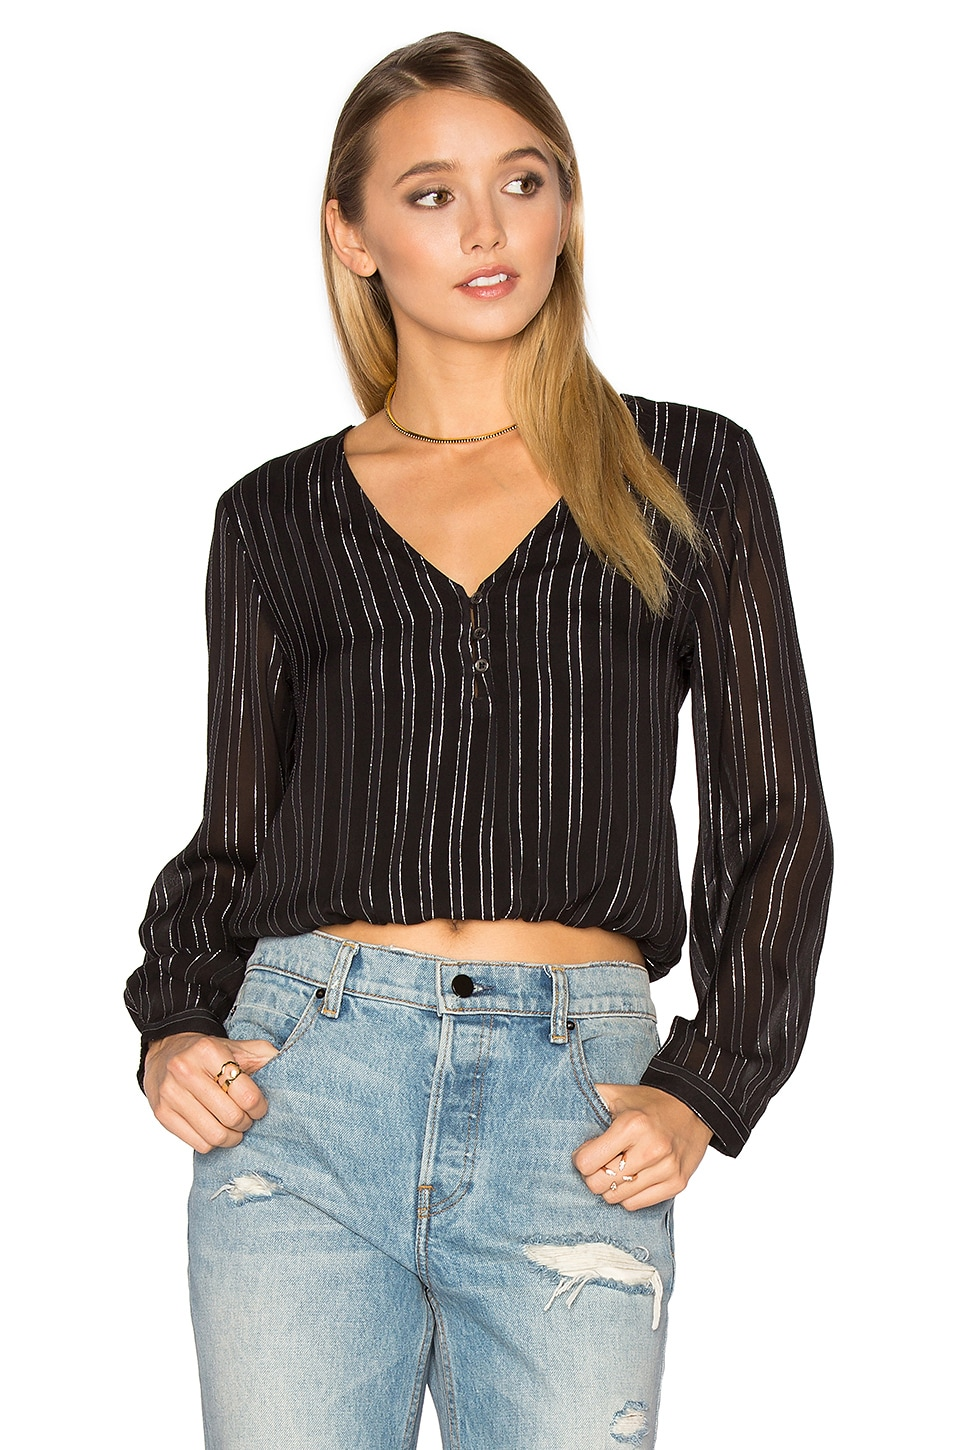 Moonlight Woven Top by AMUSE SOCIETY